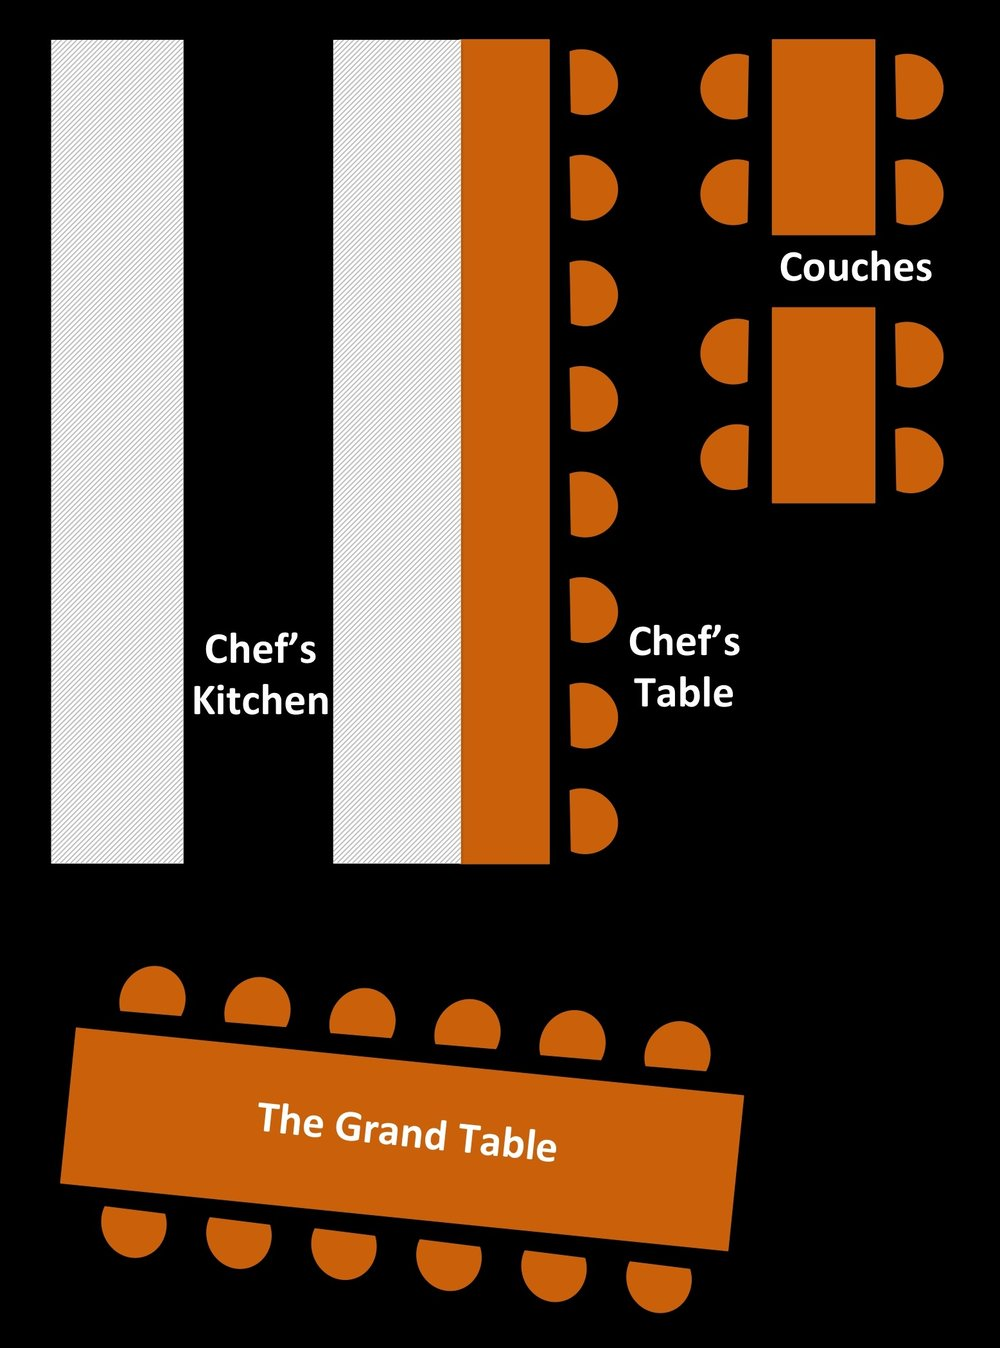 Bistro Seating Plan.jpg